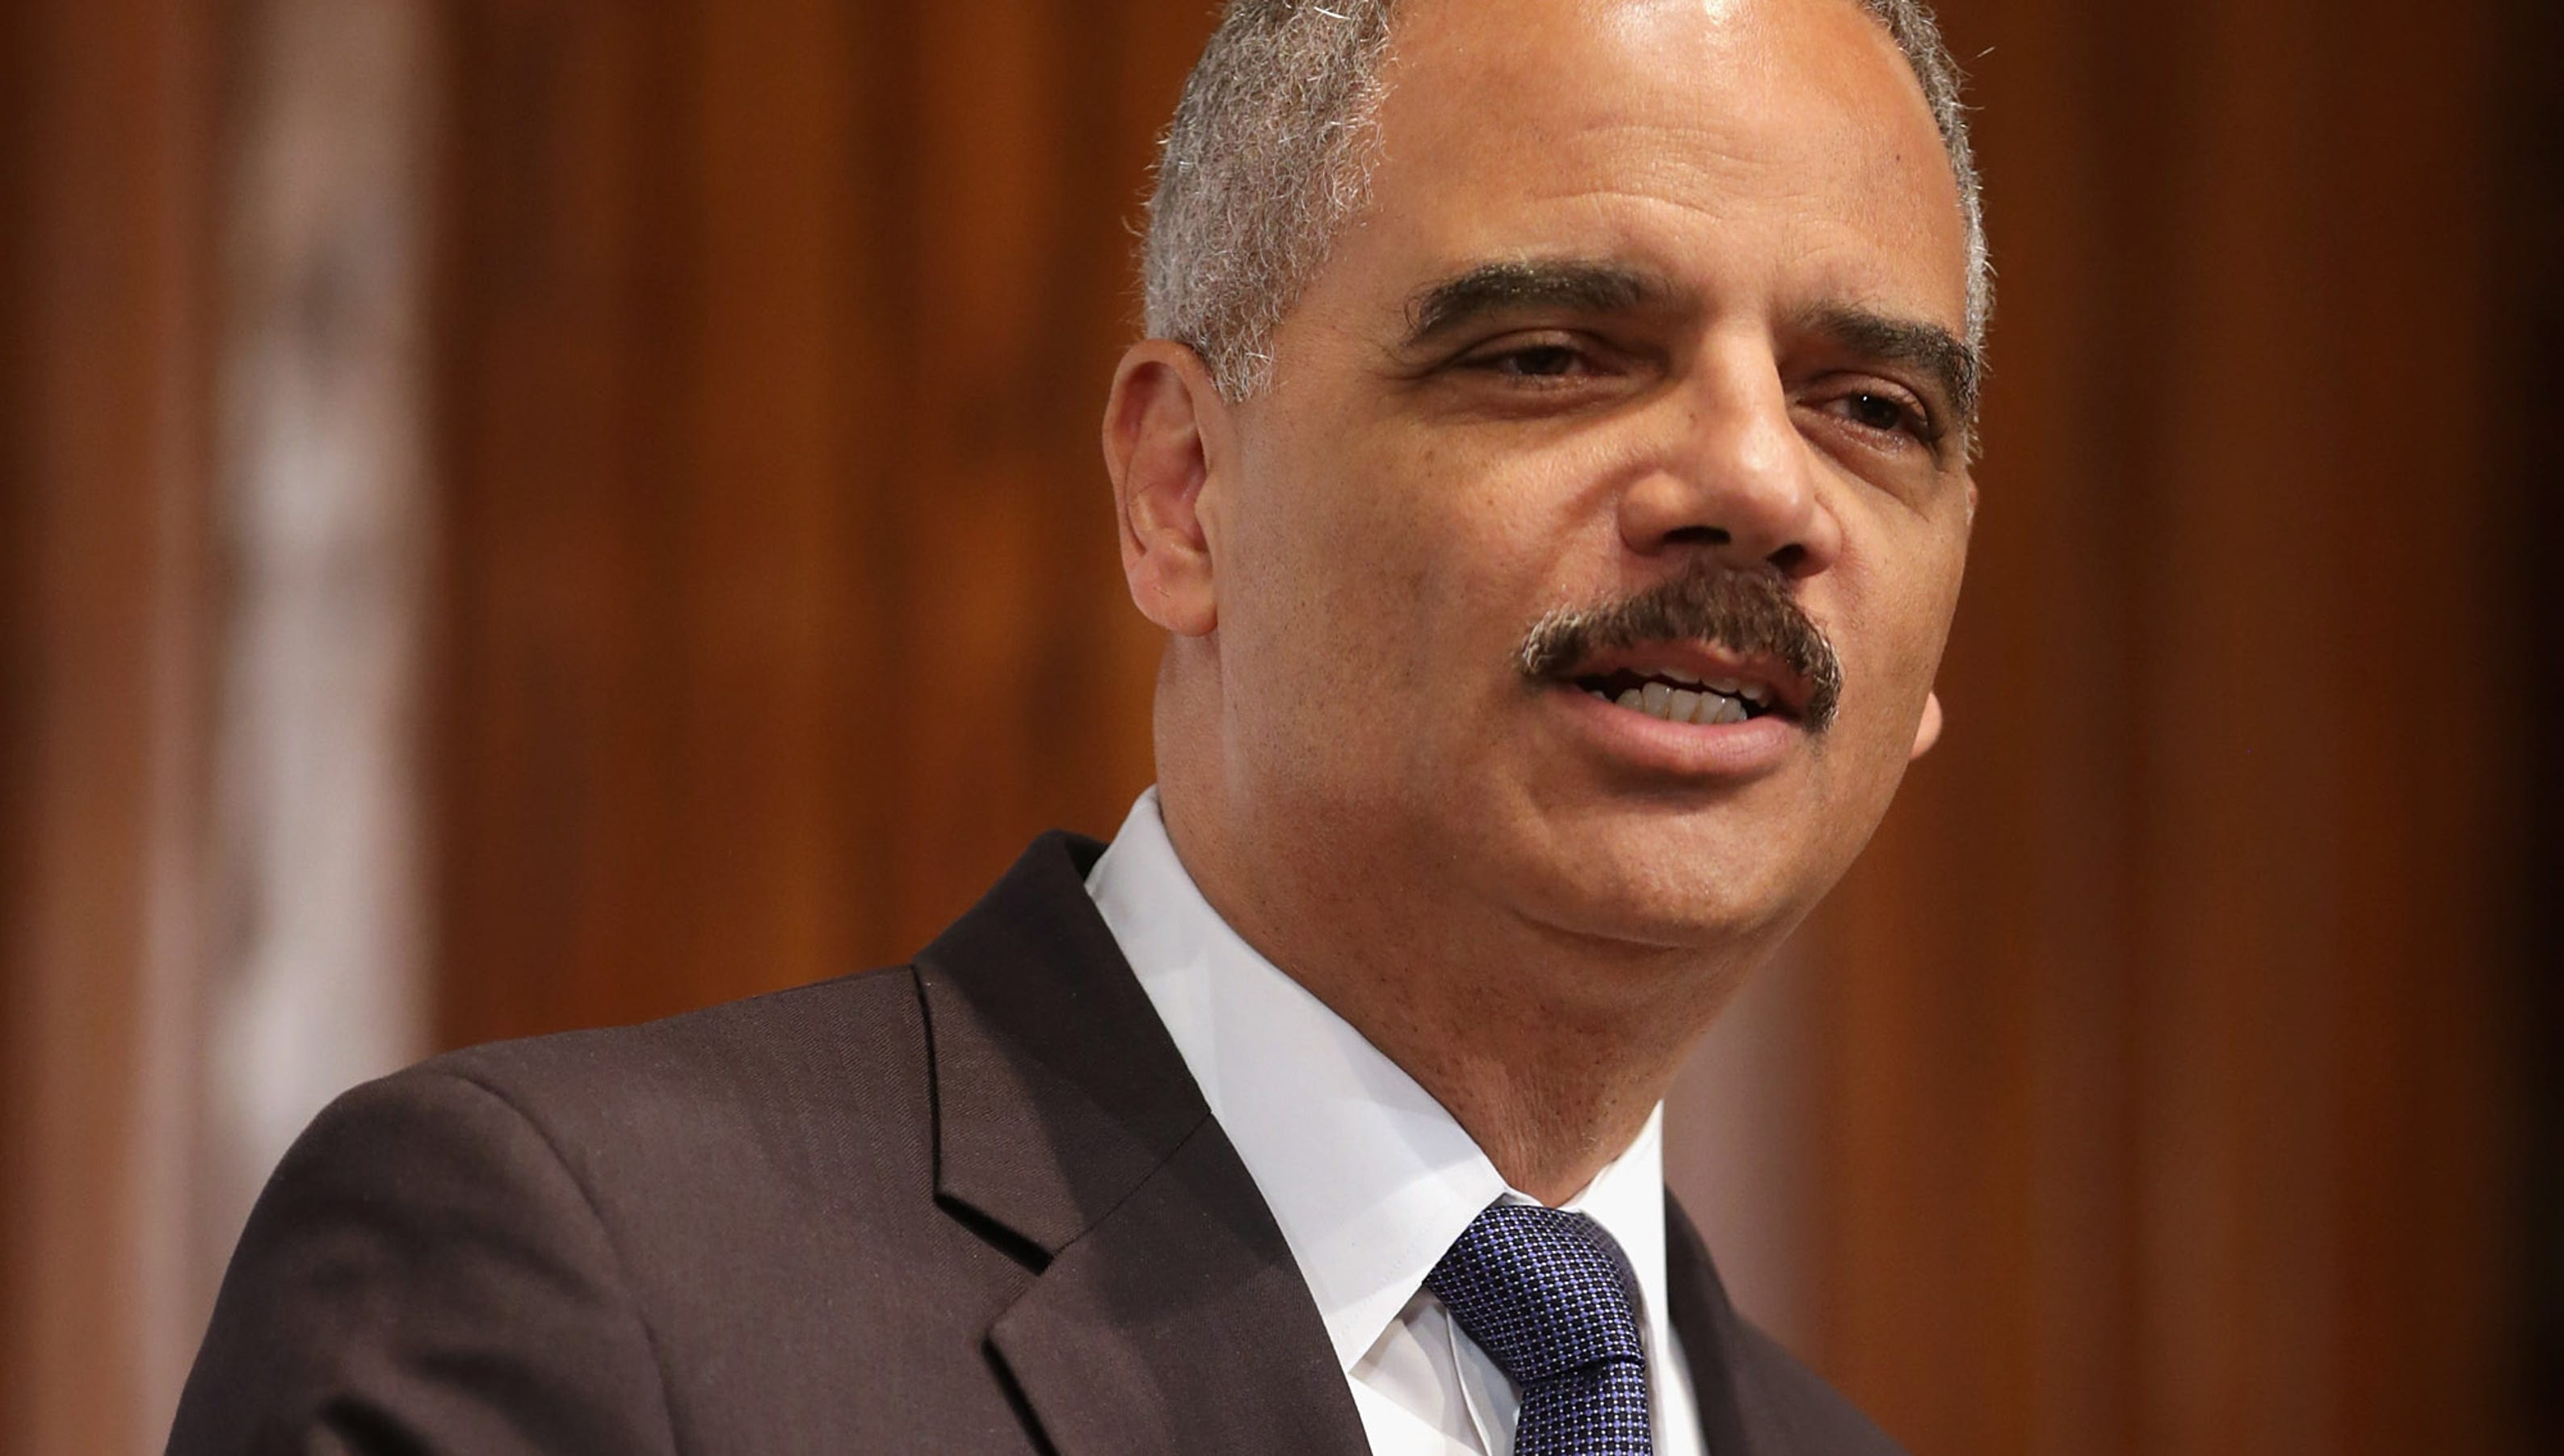 subtle destruction a story of racism On the 60th anniversary of brown v board of education, attorney general eric holder and first lady michelle obama said racism is still alive and there is work yet to be done.